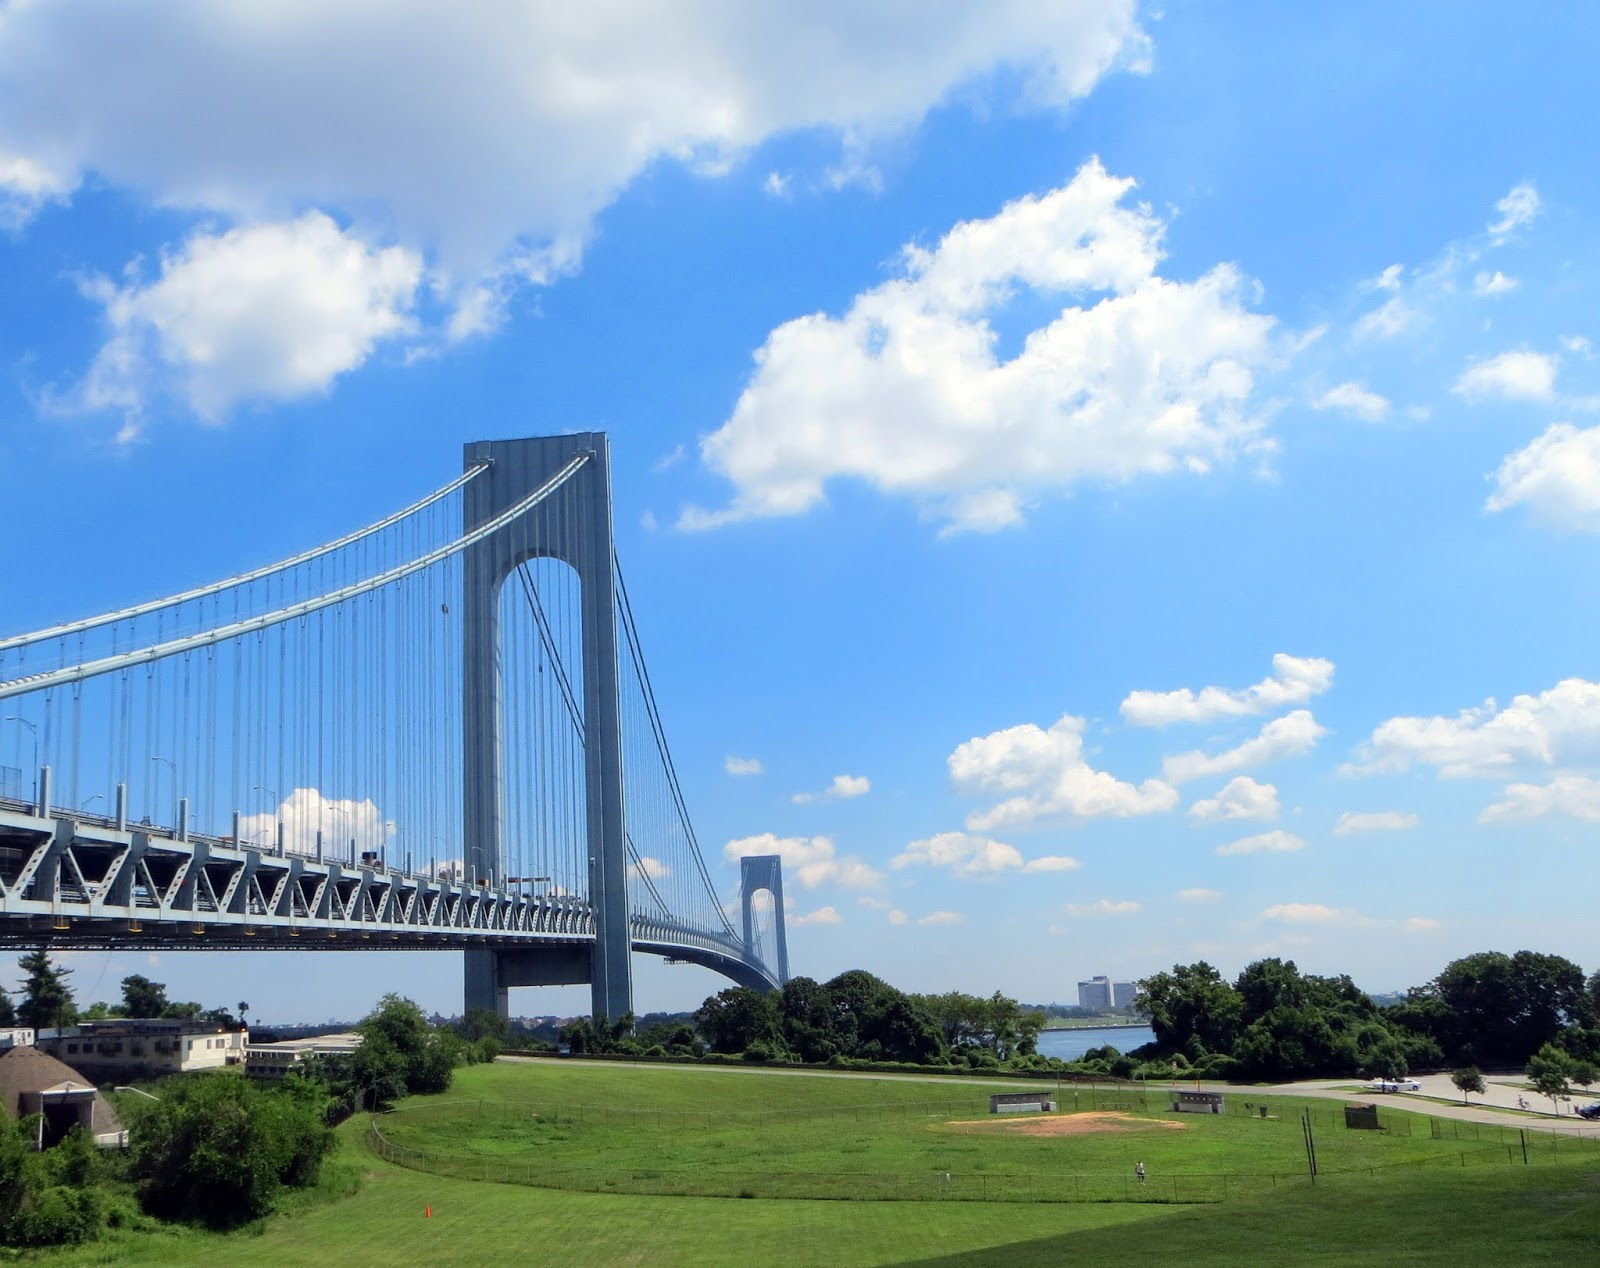 A view of the Verrazano-Narrows Bridge 5190d9e4892a